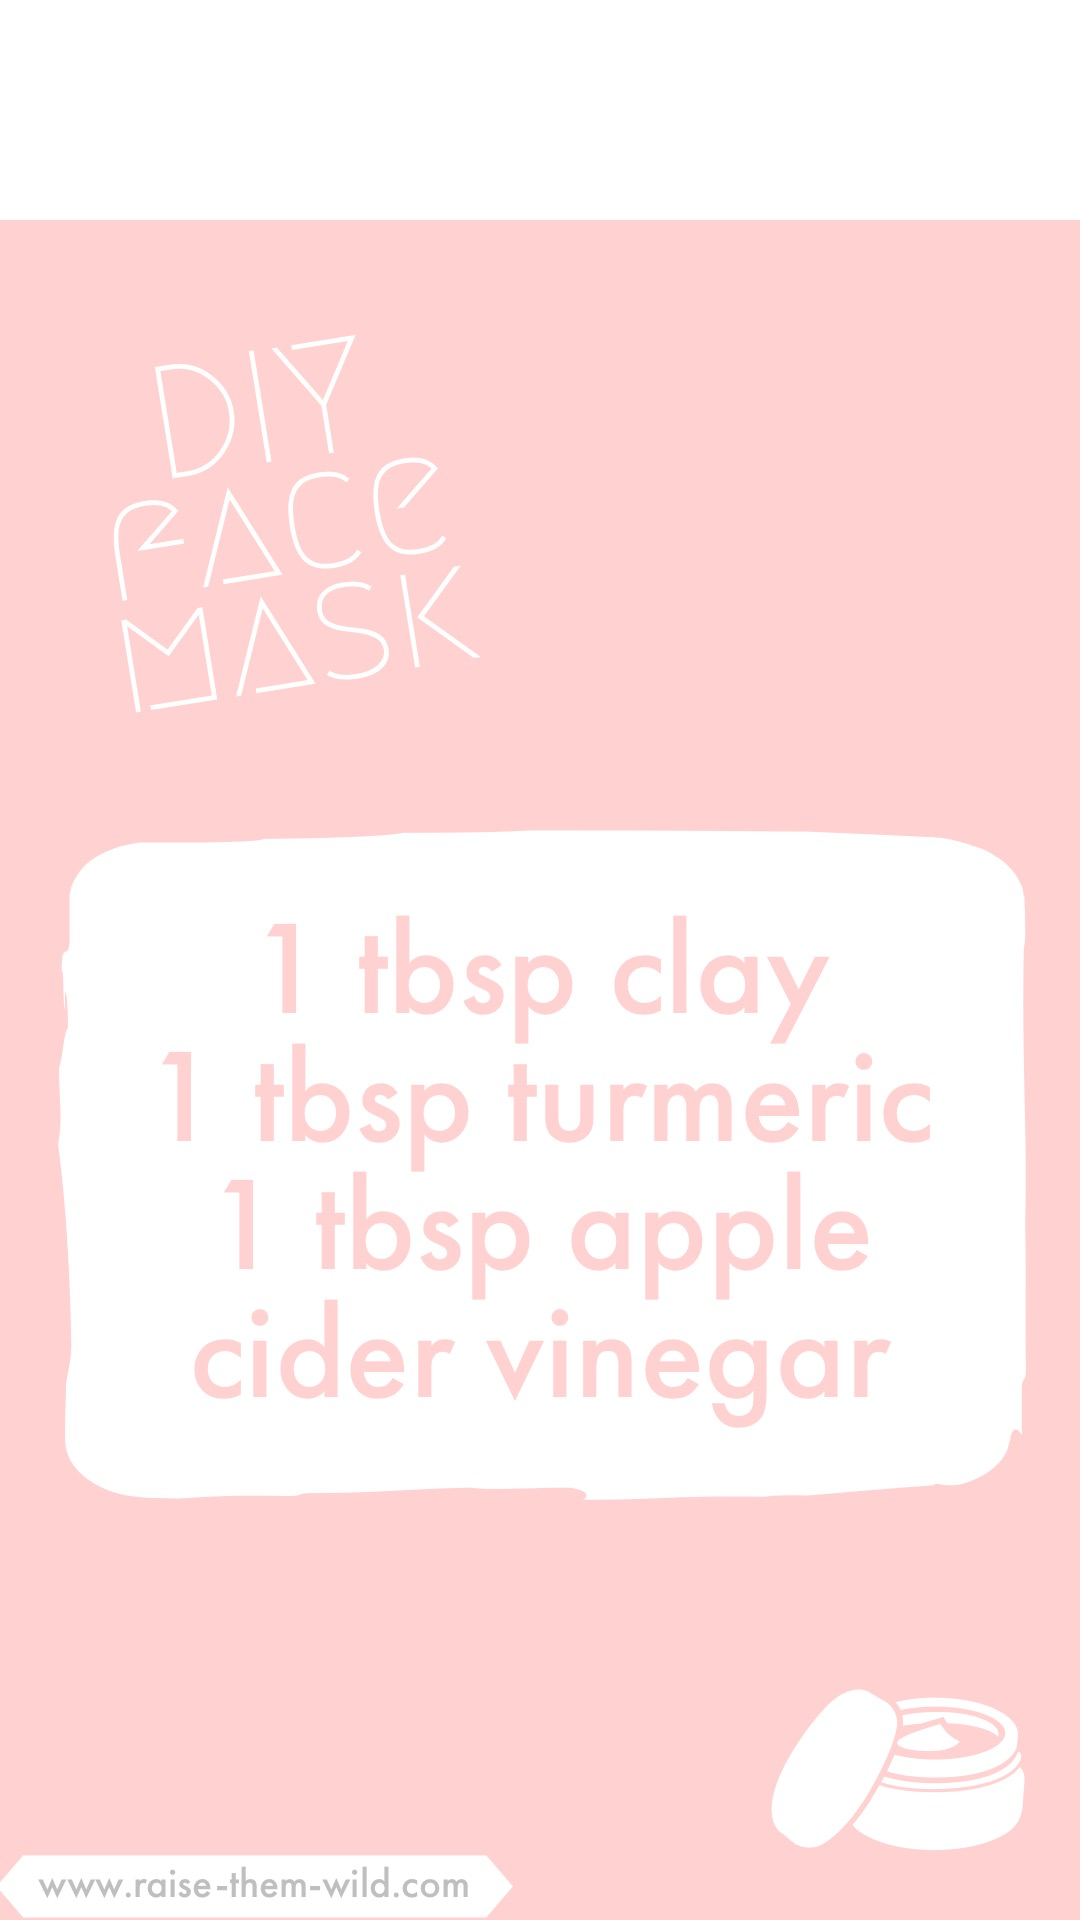 diy face mask.JPG